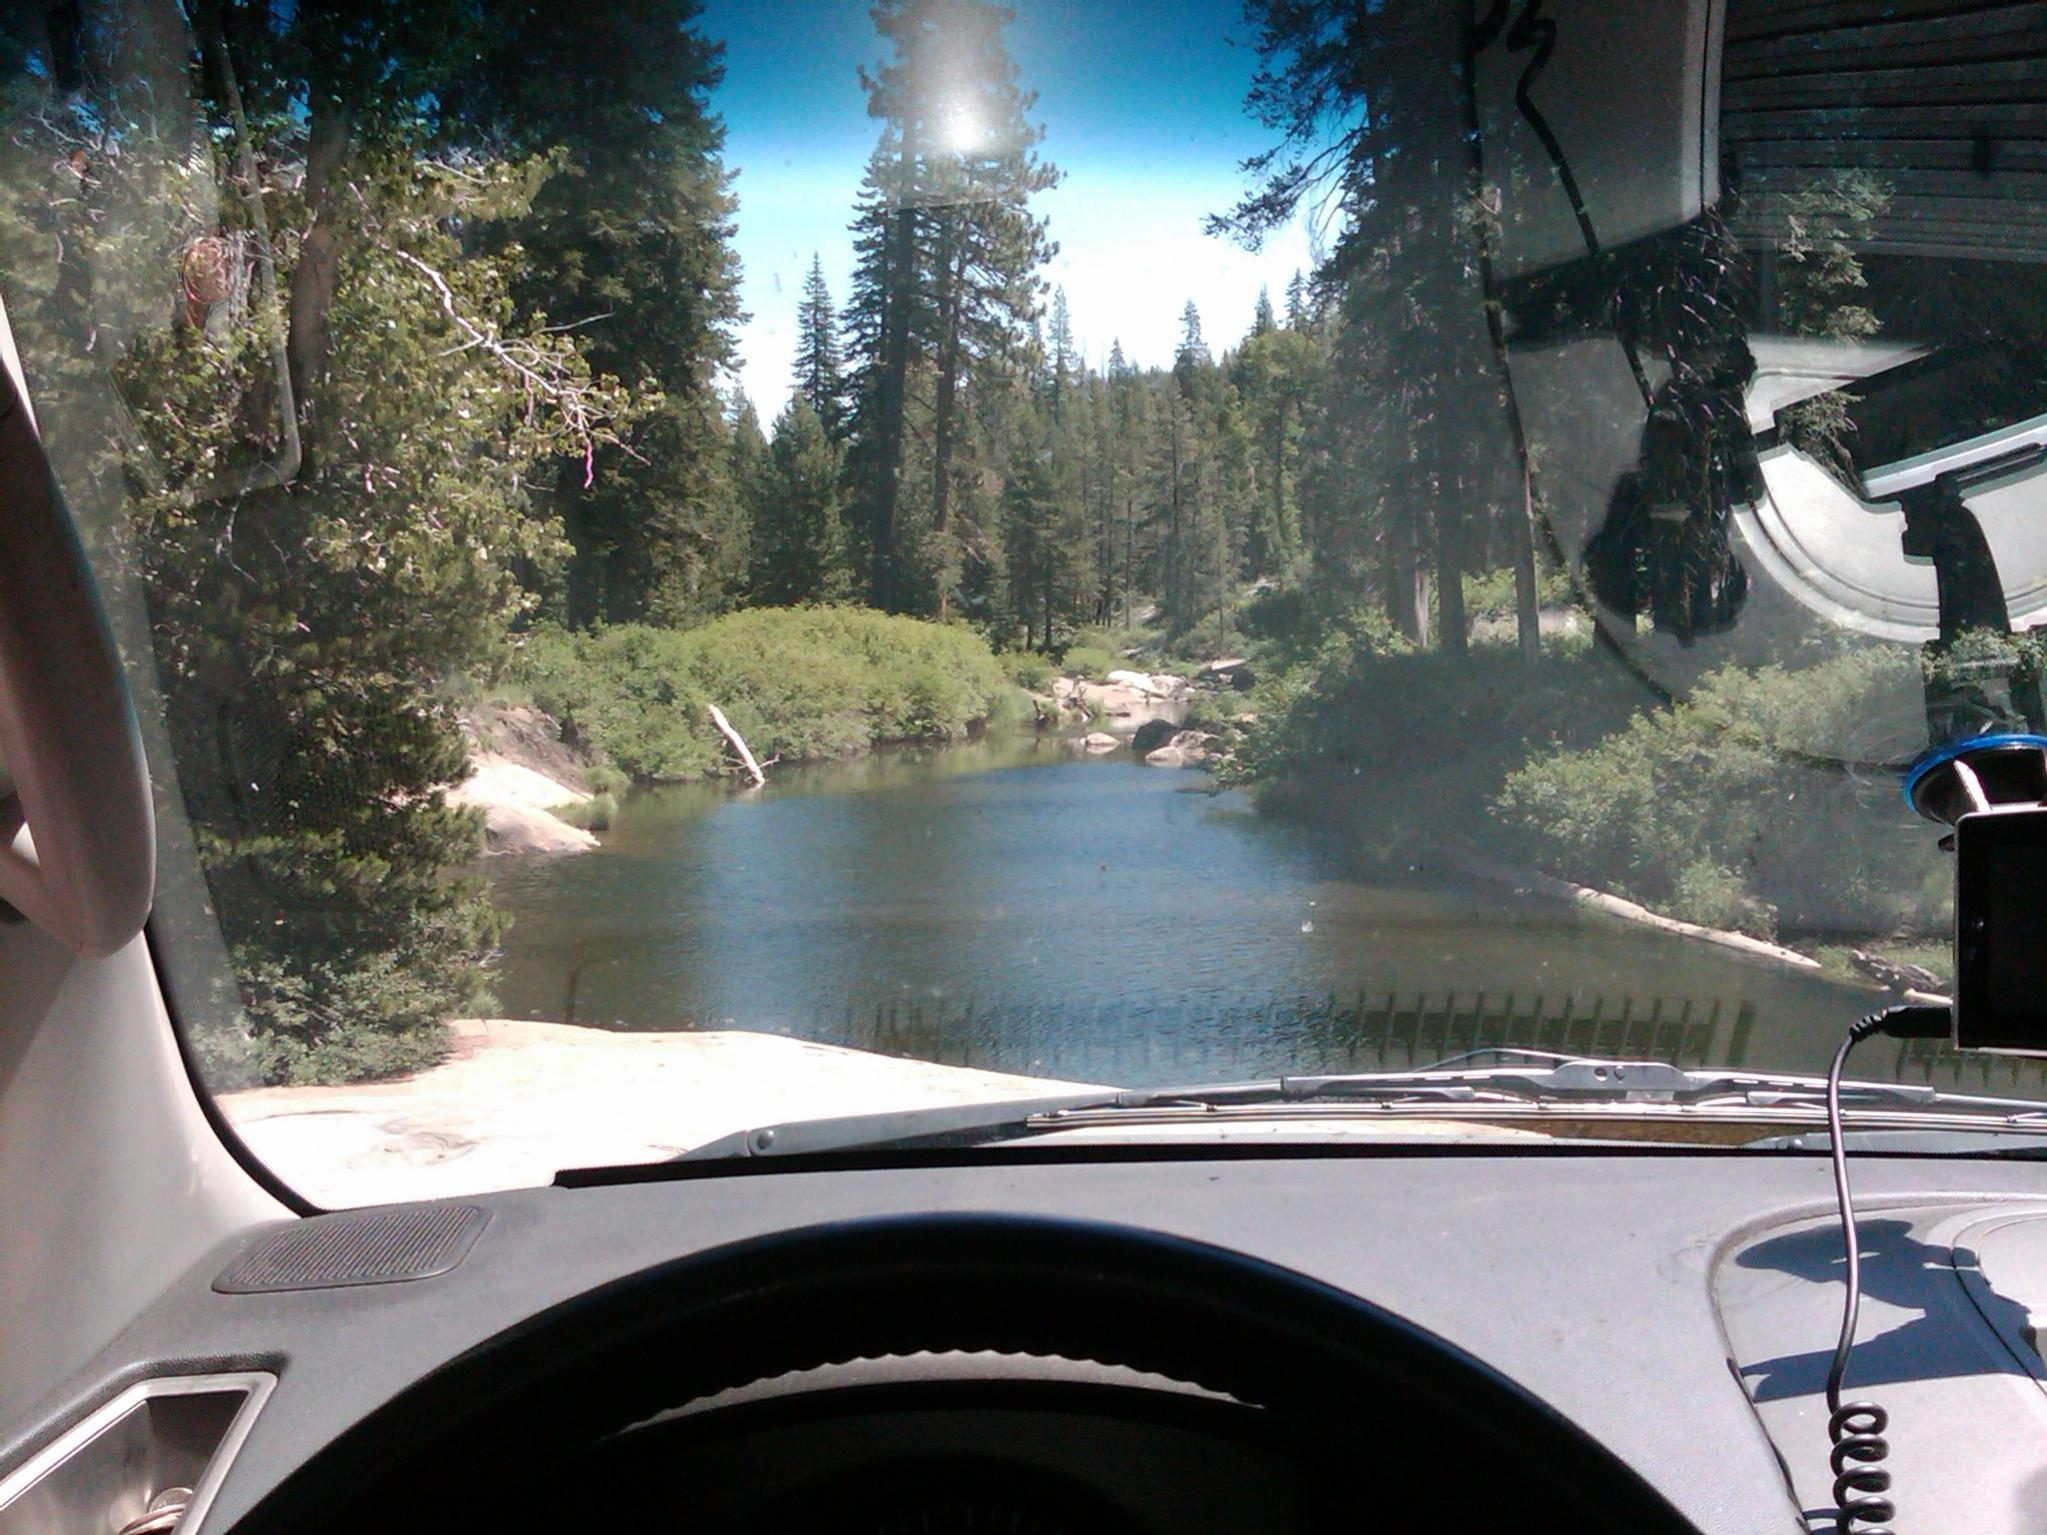 Pictures from your windshield-tahoe.jpg